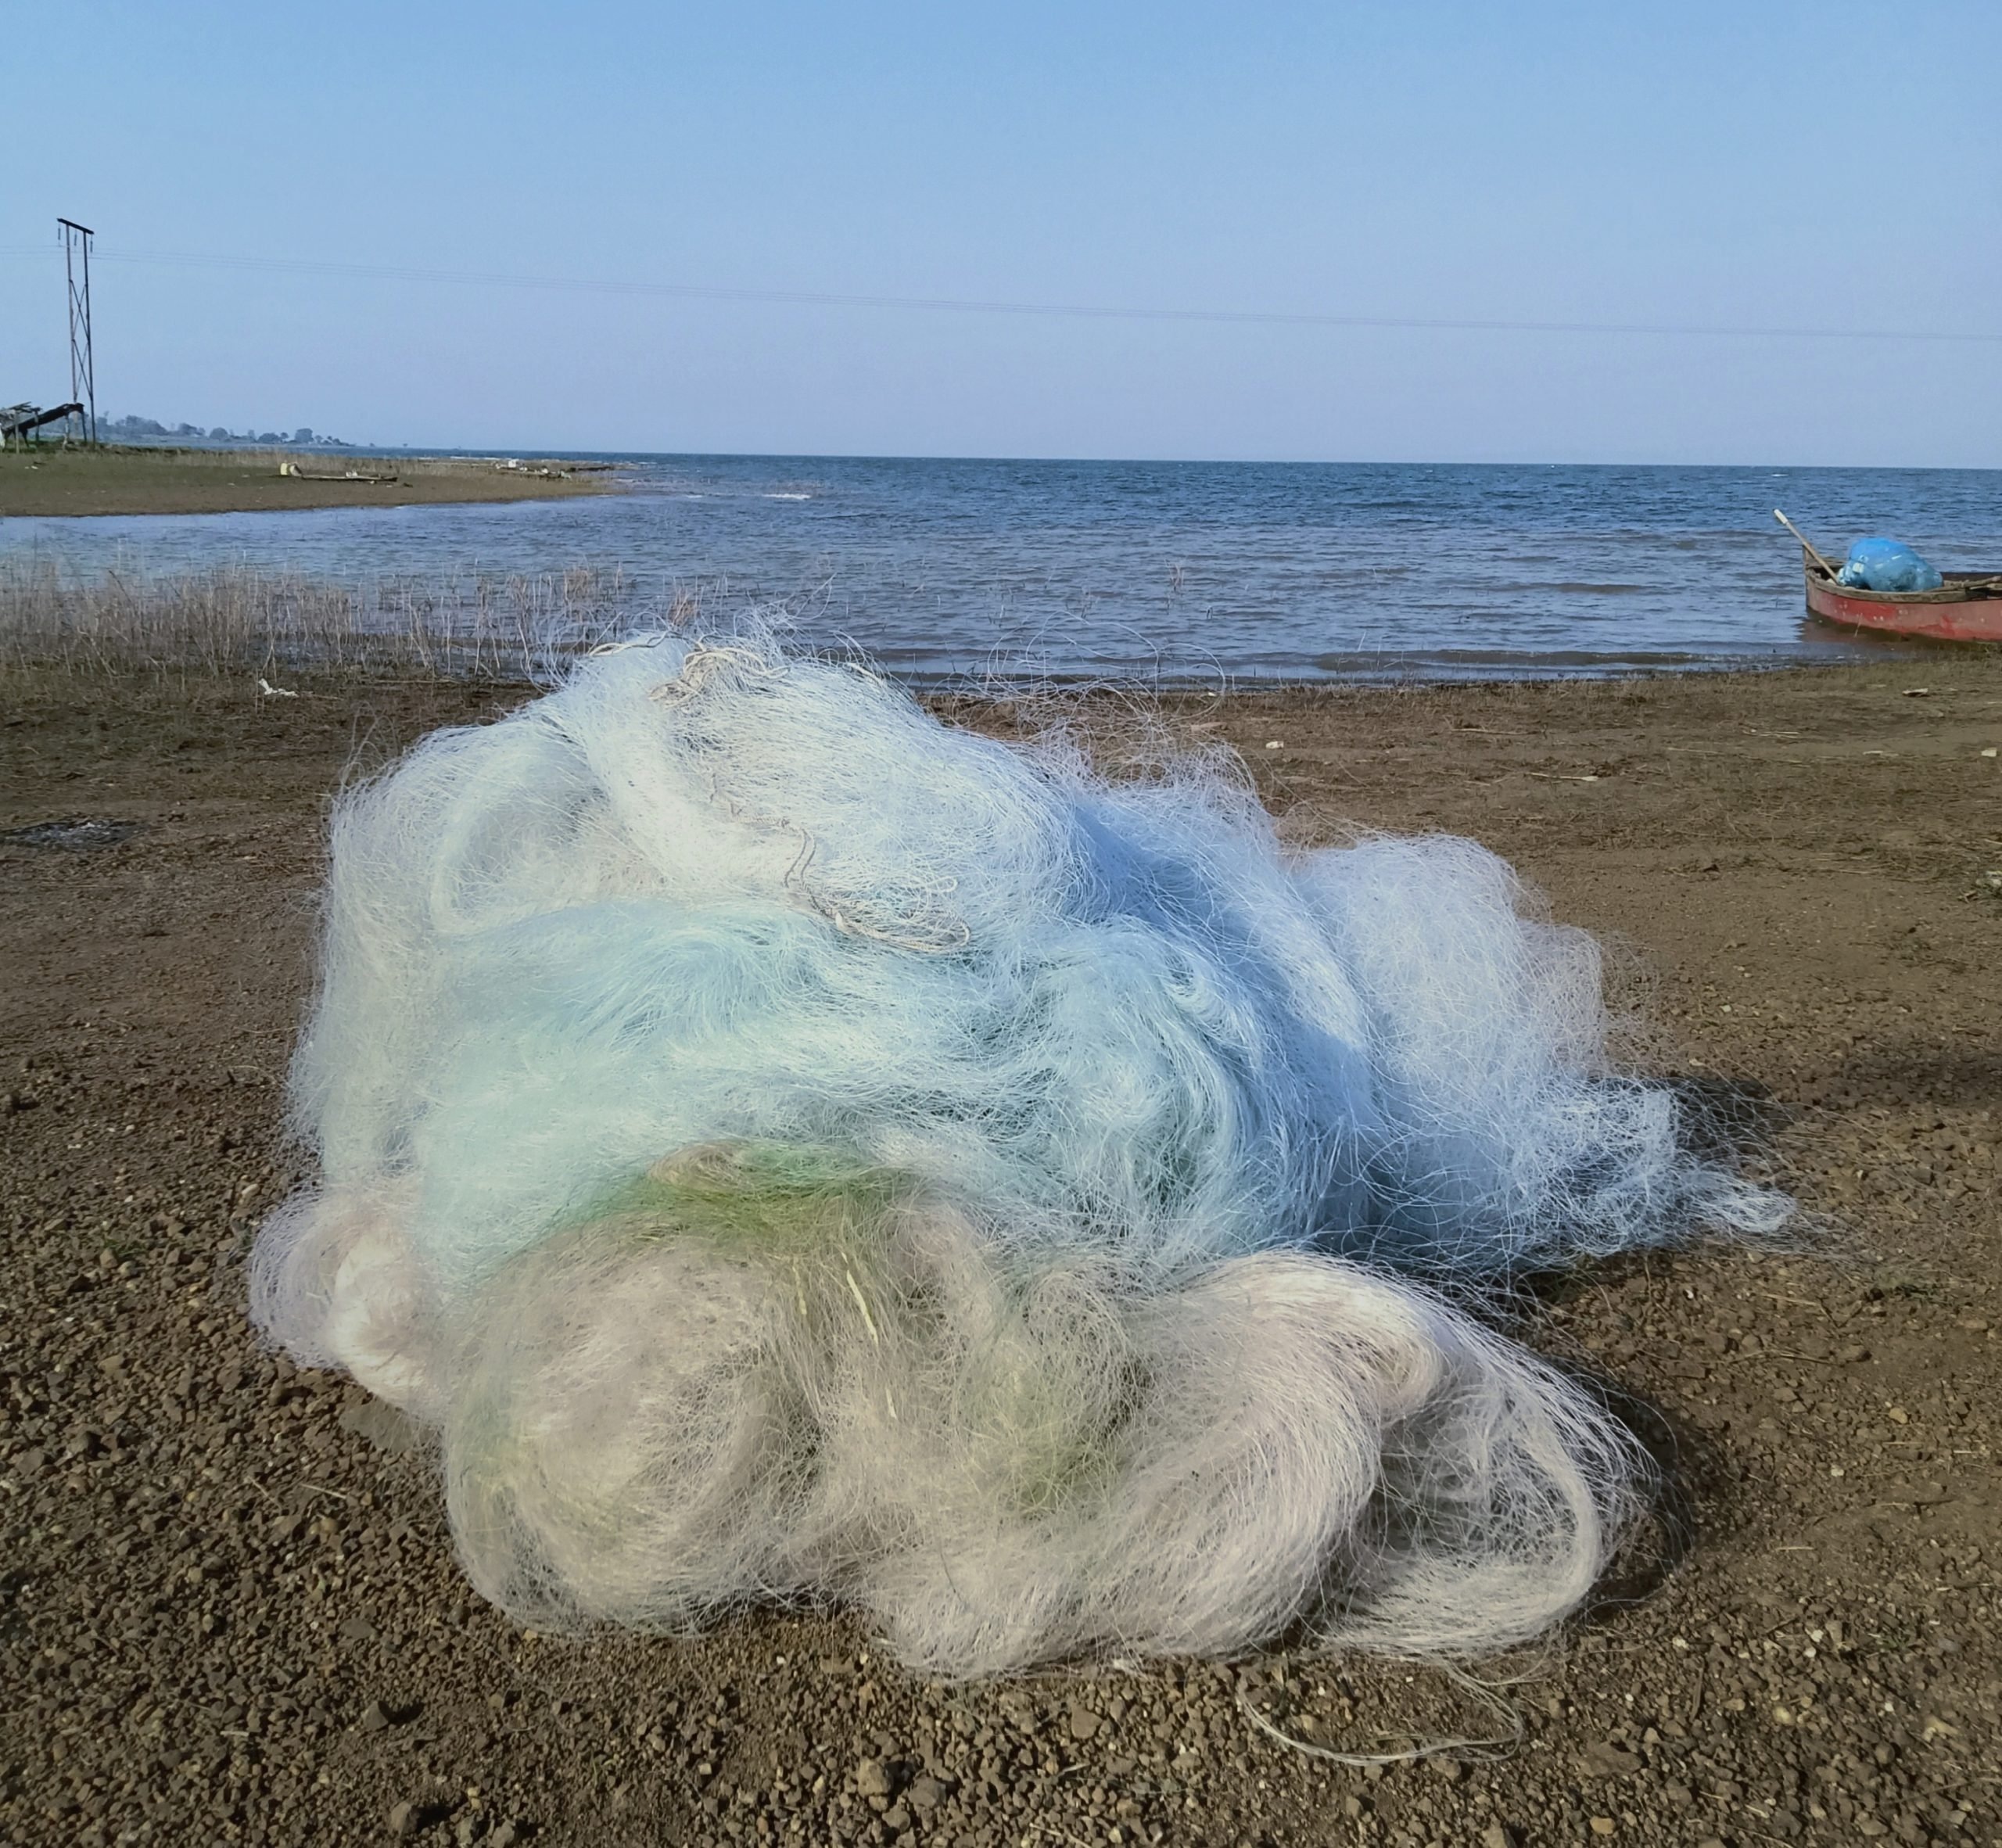 White fisher net at the side of the beach